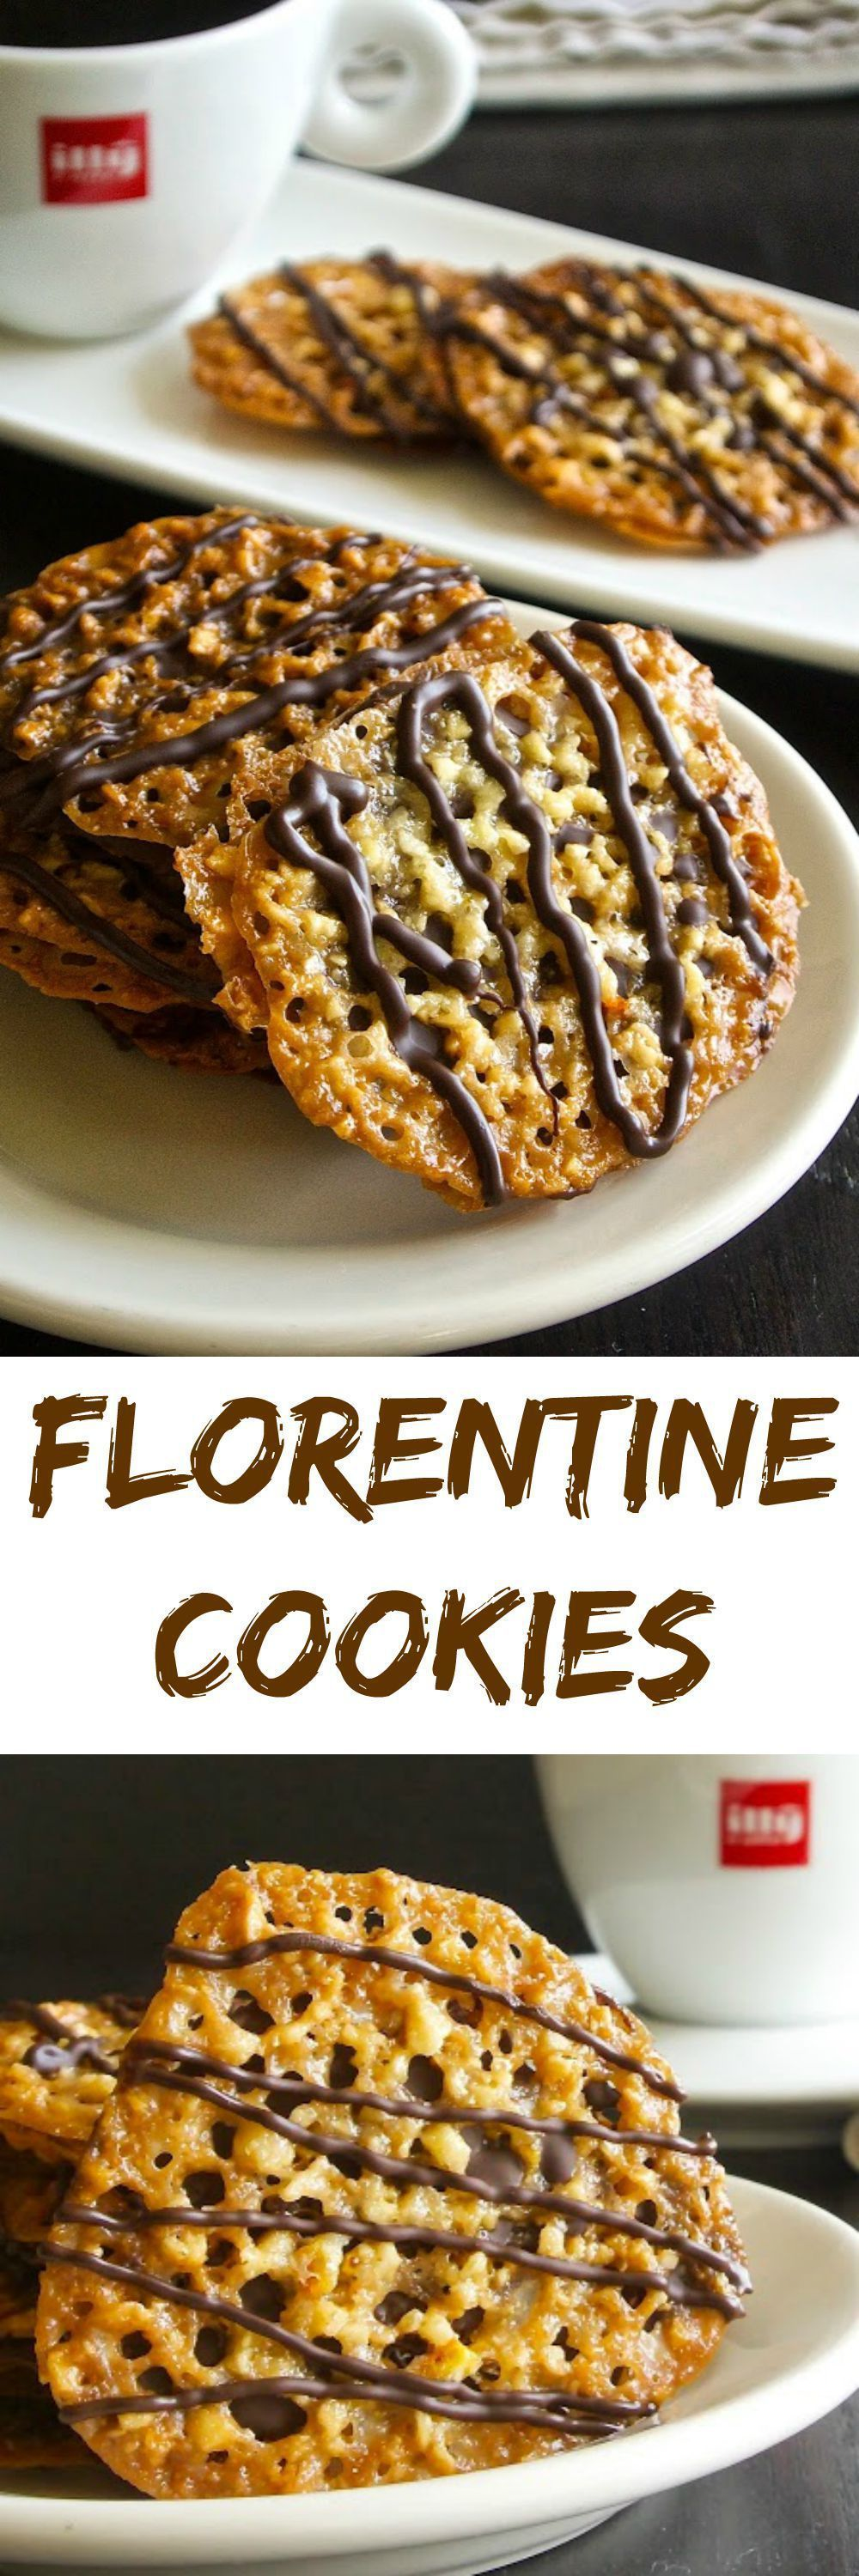 Sometimes called lace cookies, Florentine cookies are made of finely chopped almonds with orange & vanilla, then either dipped or sandwiched with chocolate.Sometimes called lace cookies, Florentine cookies are made of finely chopped almonds with orange & vanilla, then either dipped or sandwiched with chocolate.Cookies Sometime...